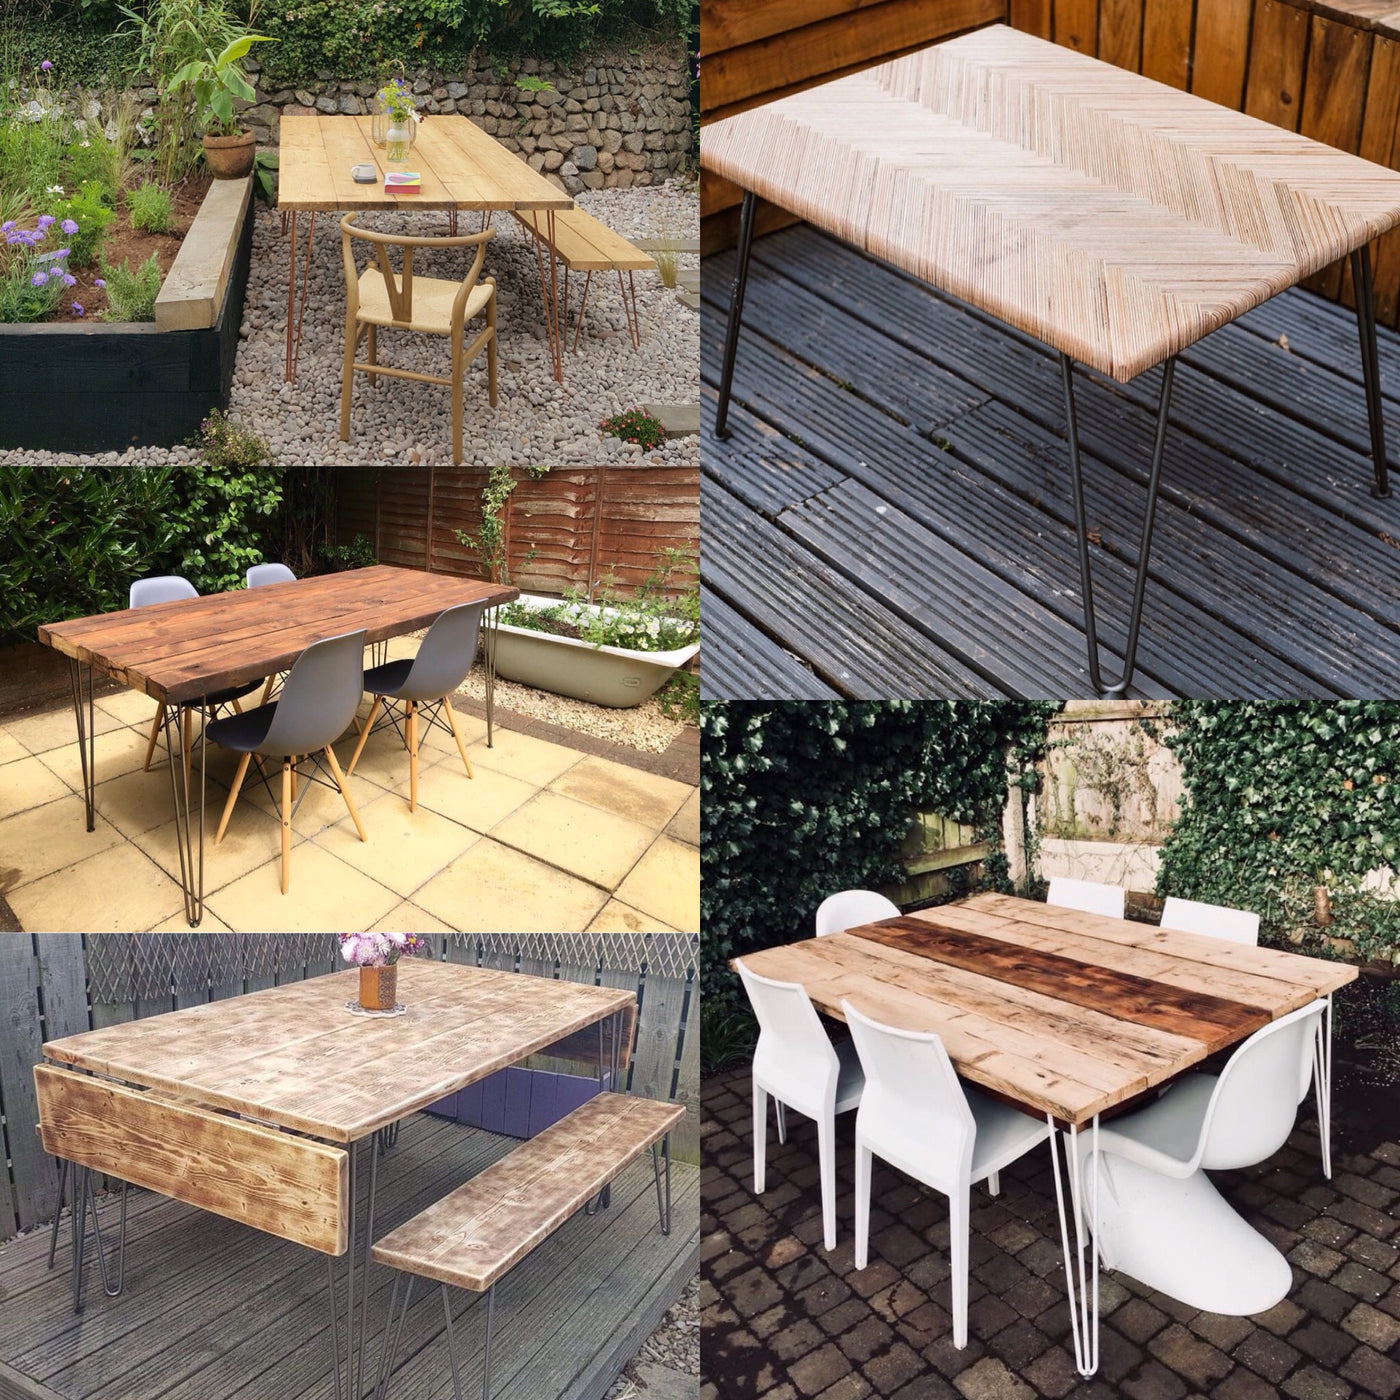 Summer Diy Inspiration 5 Garden Tables With Hairpin Legs